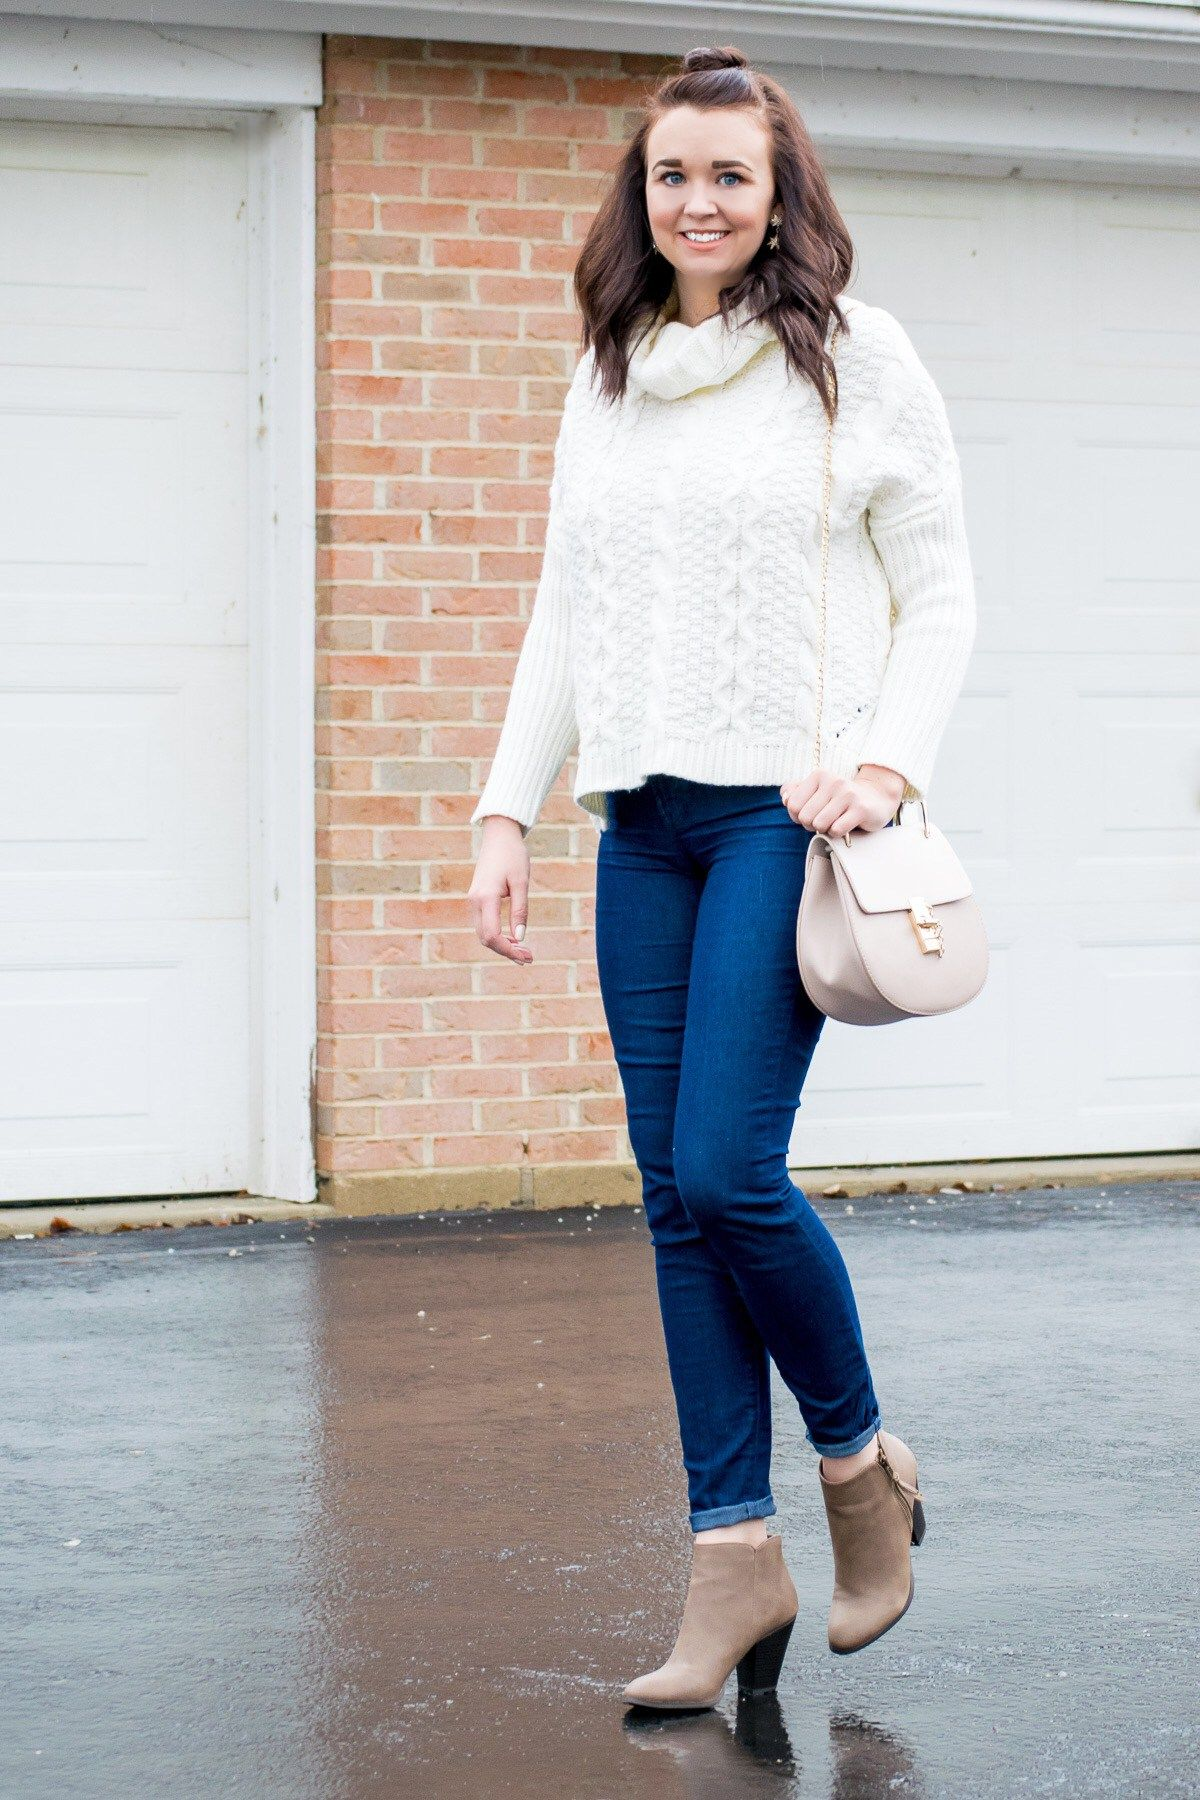 dfb1ca51072e An Affordable and Cozy White Turtleneck Sweater | ShopStyle ...